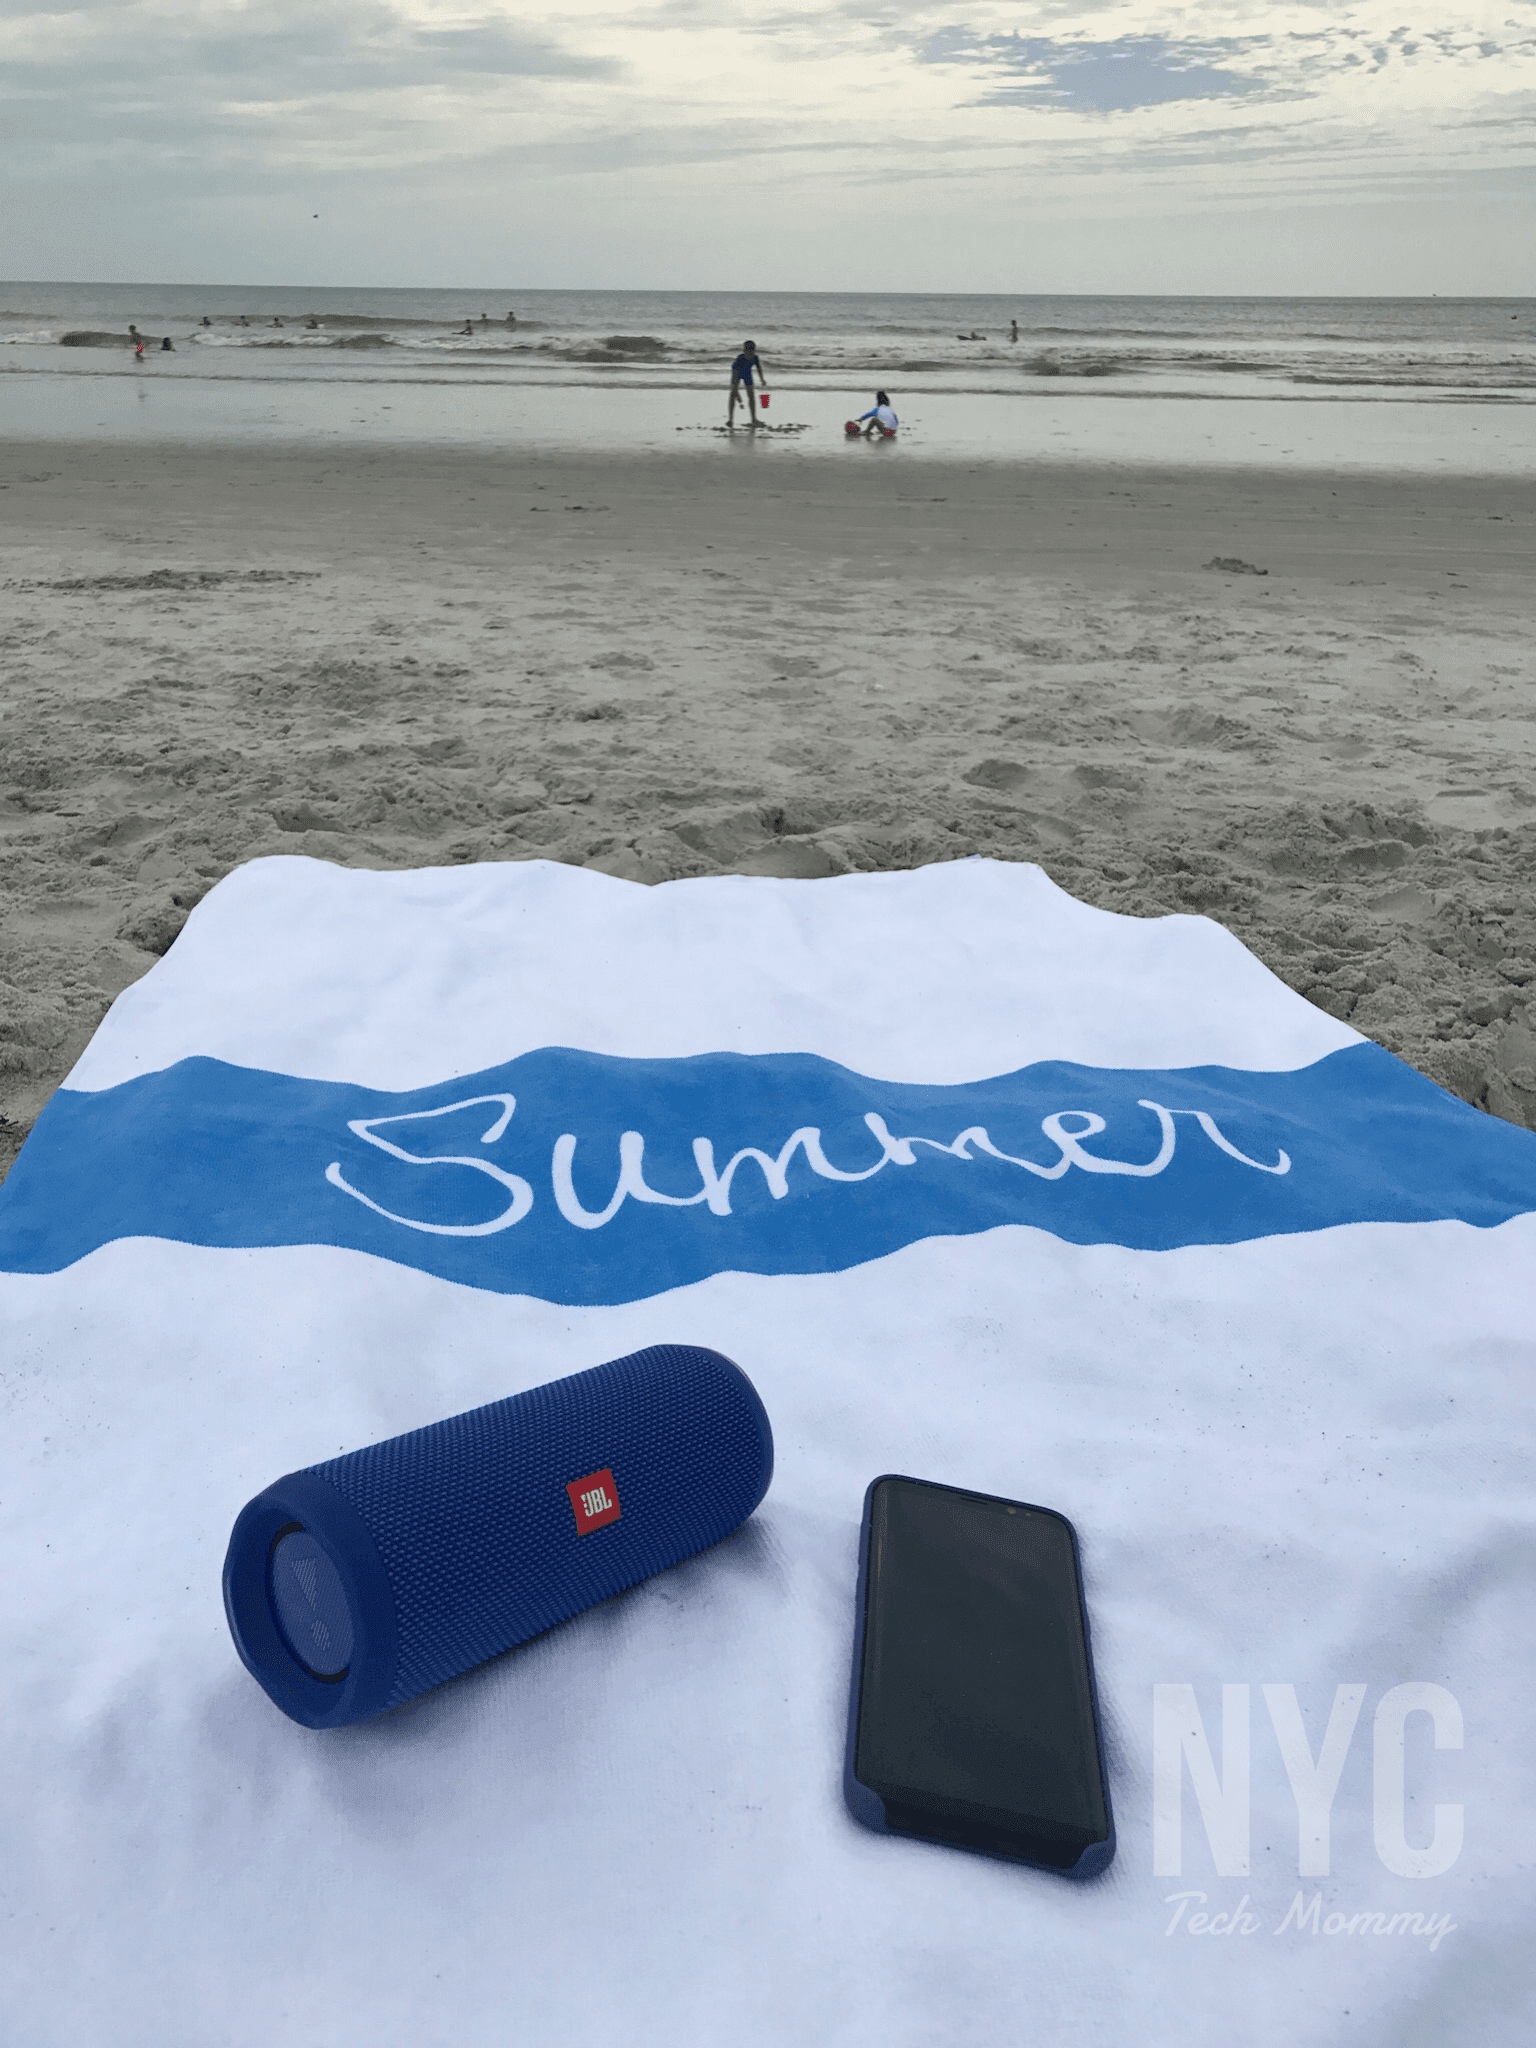 Kids are always ready for a big splash! This summer I was ready to splash right along with them thanks to 3 summer must haves that can take a big splash. Check out my favorite summer gadgets and the smarter towel for summer!